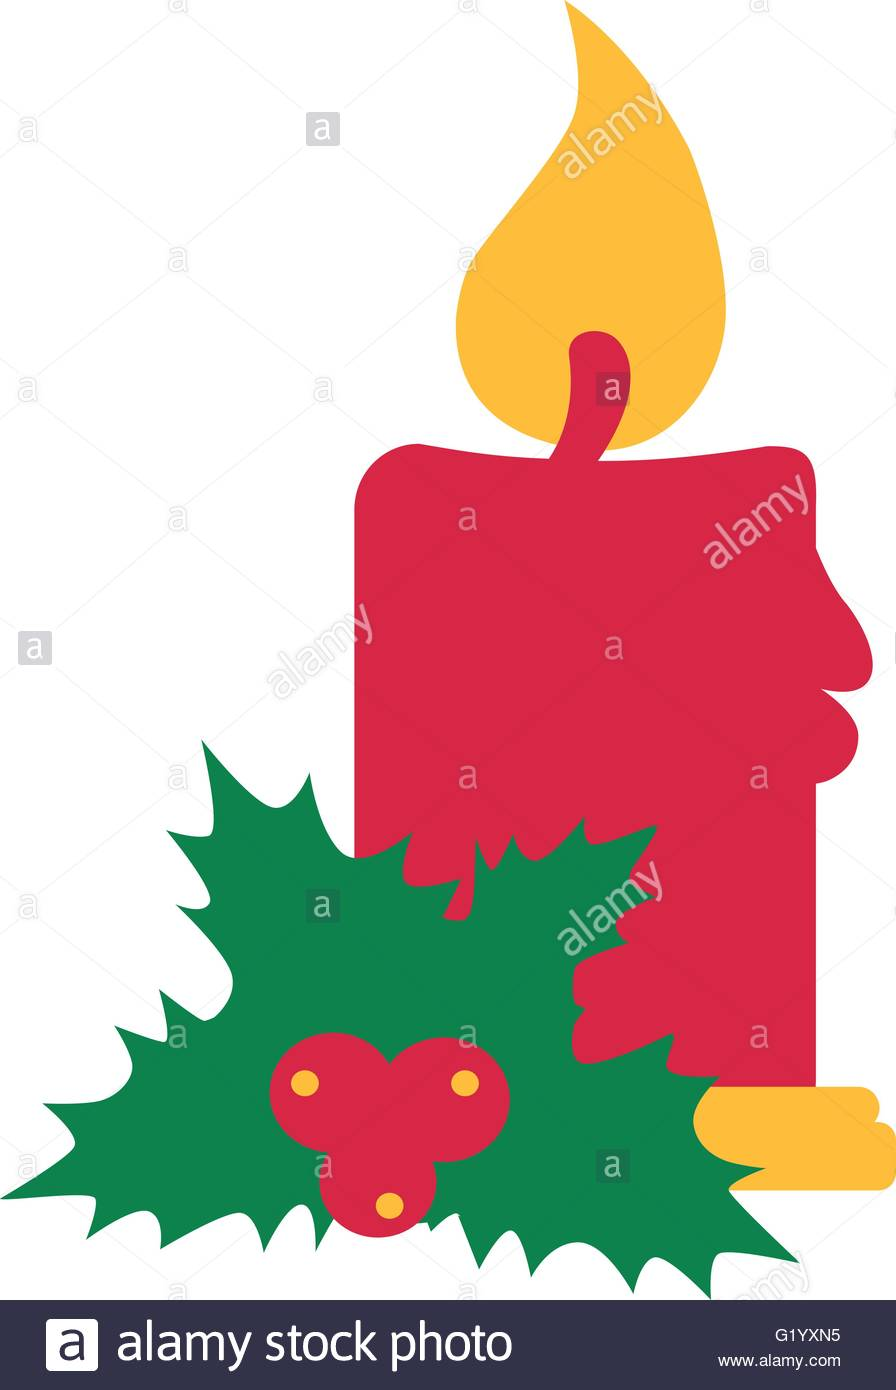 896x1390 Christmas Candle With Mistletoe Stock Vector Art Amp Illustration